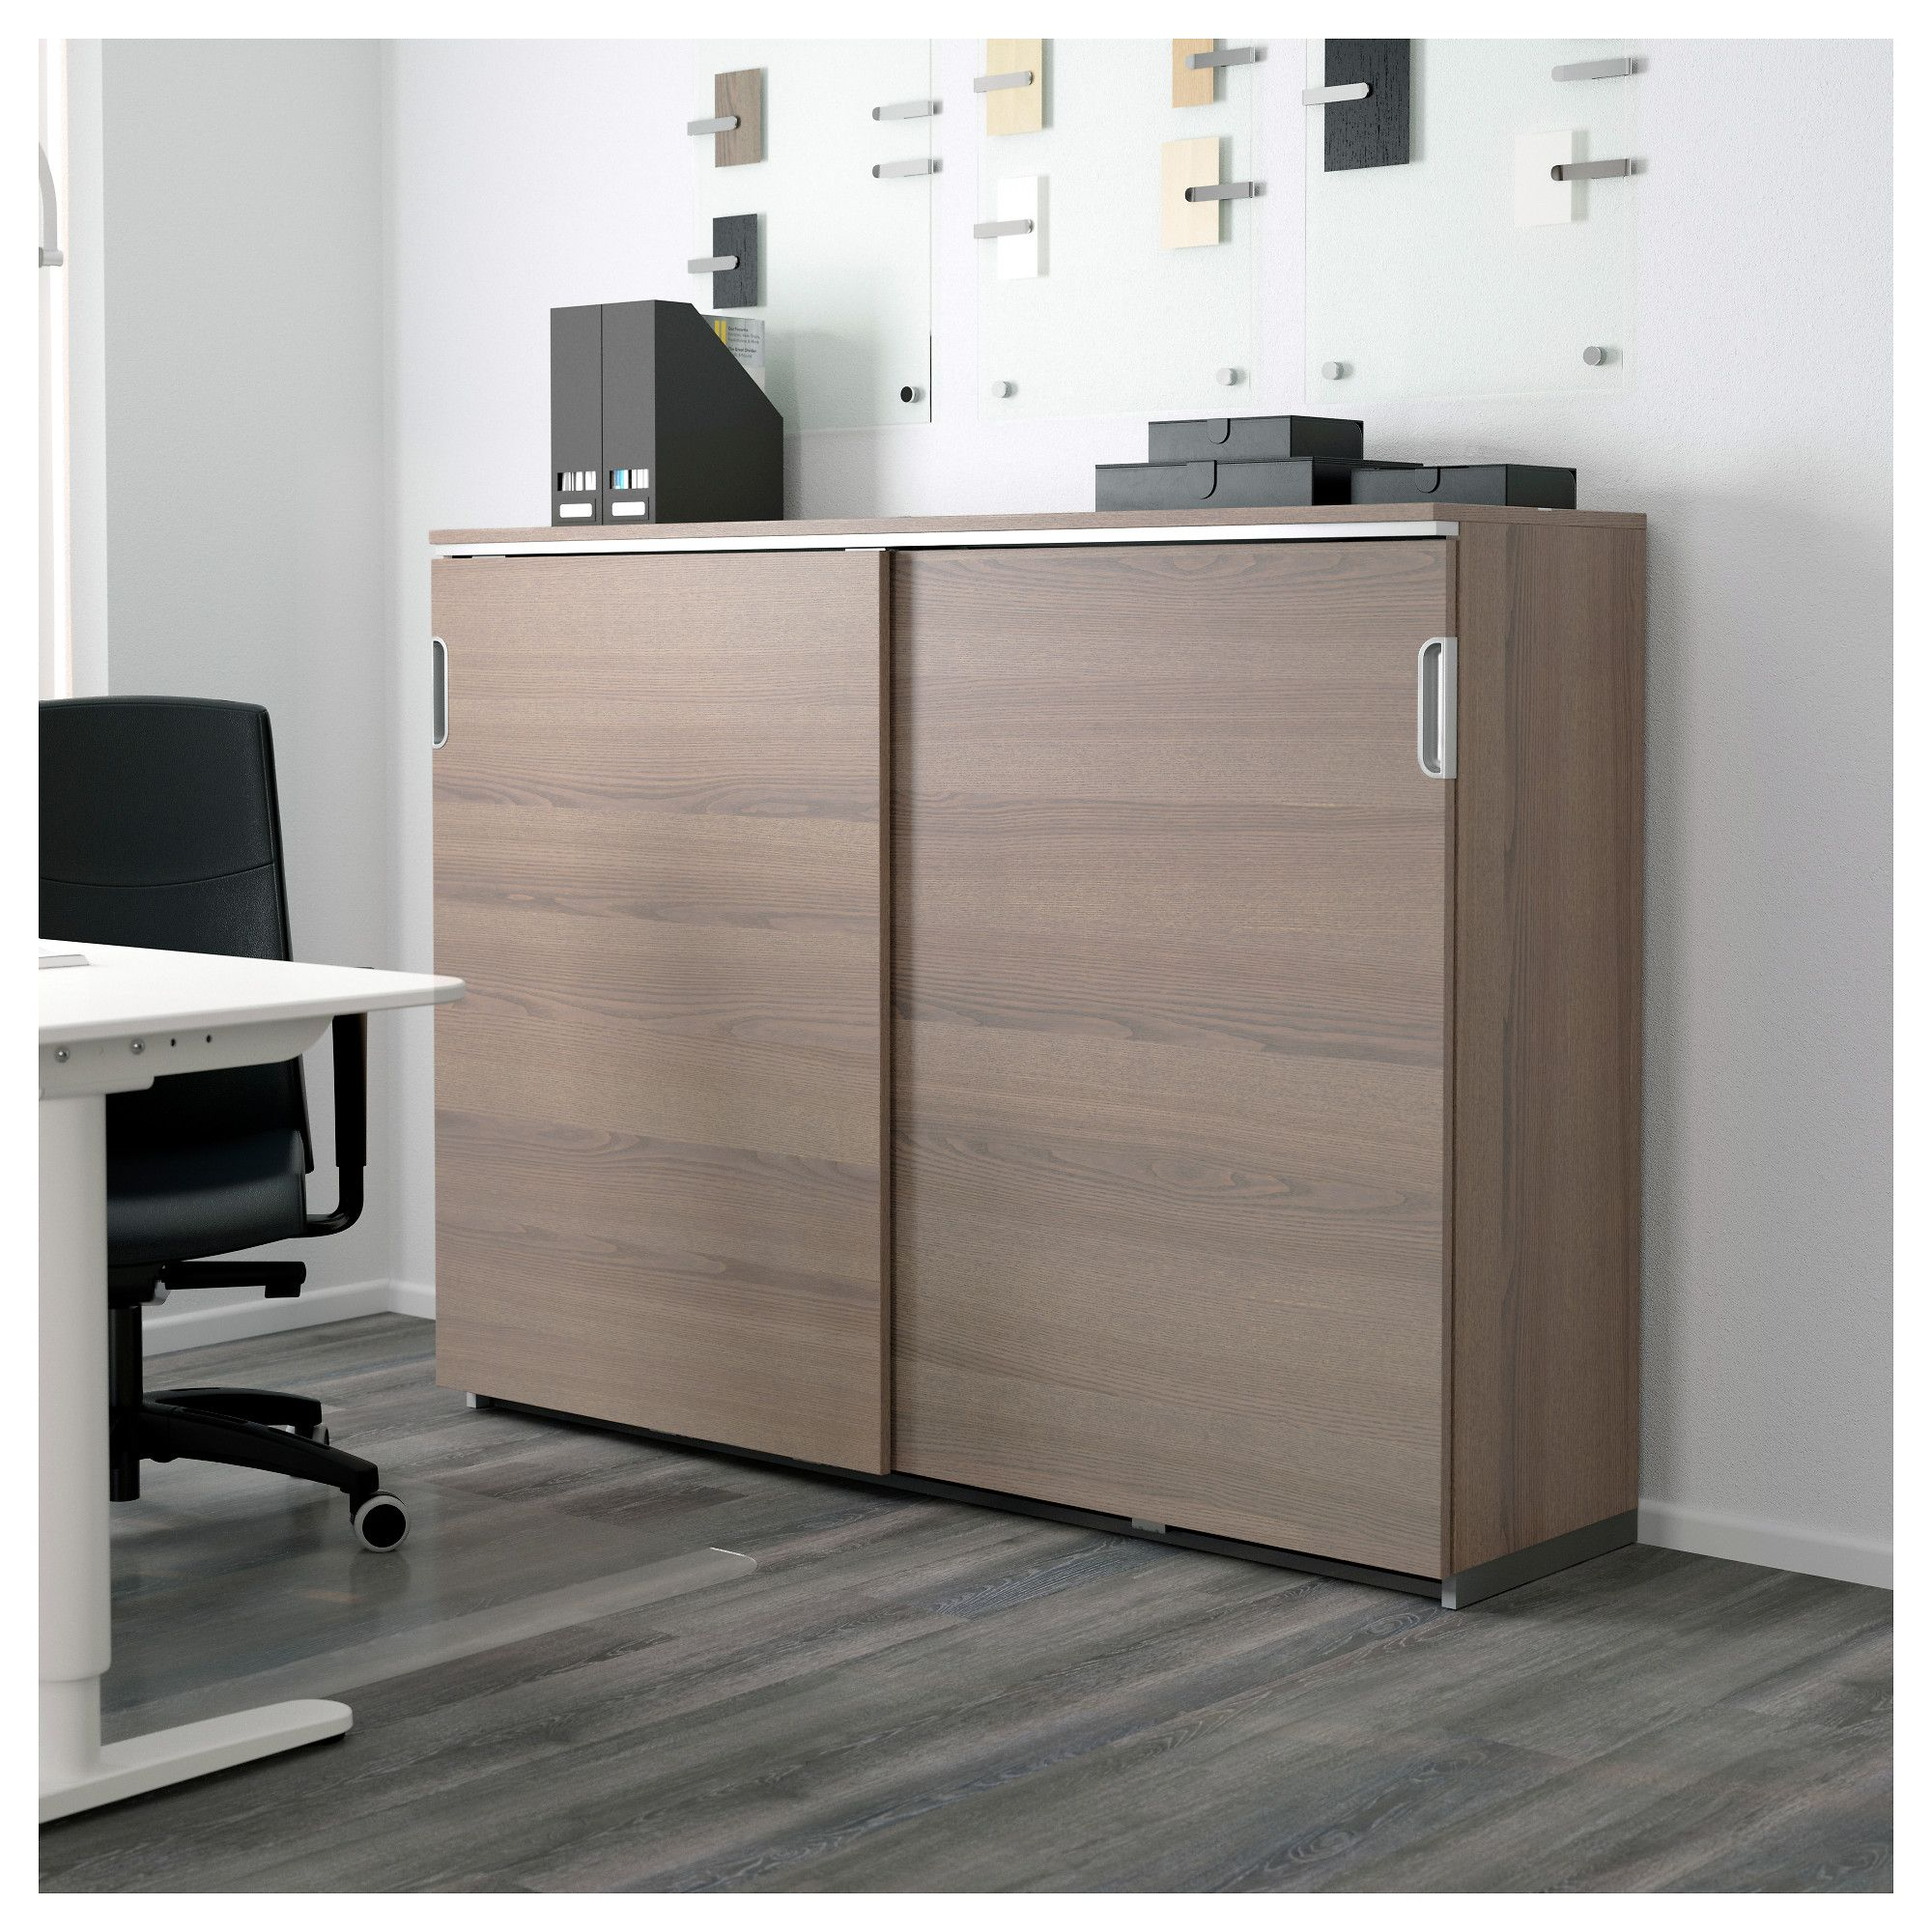 Office storage cabinets ikea Interior Ikea Galant Cabinet With Sliding Doors Gray Valeria Furniture Ikea Galant Cabinet With Sliding Doors Gray Products Pinterest